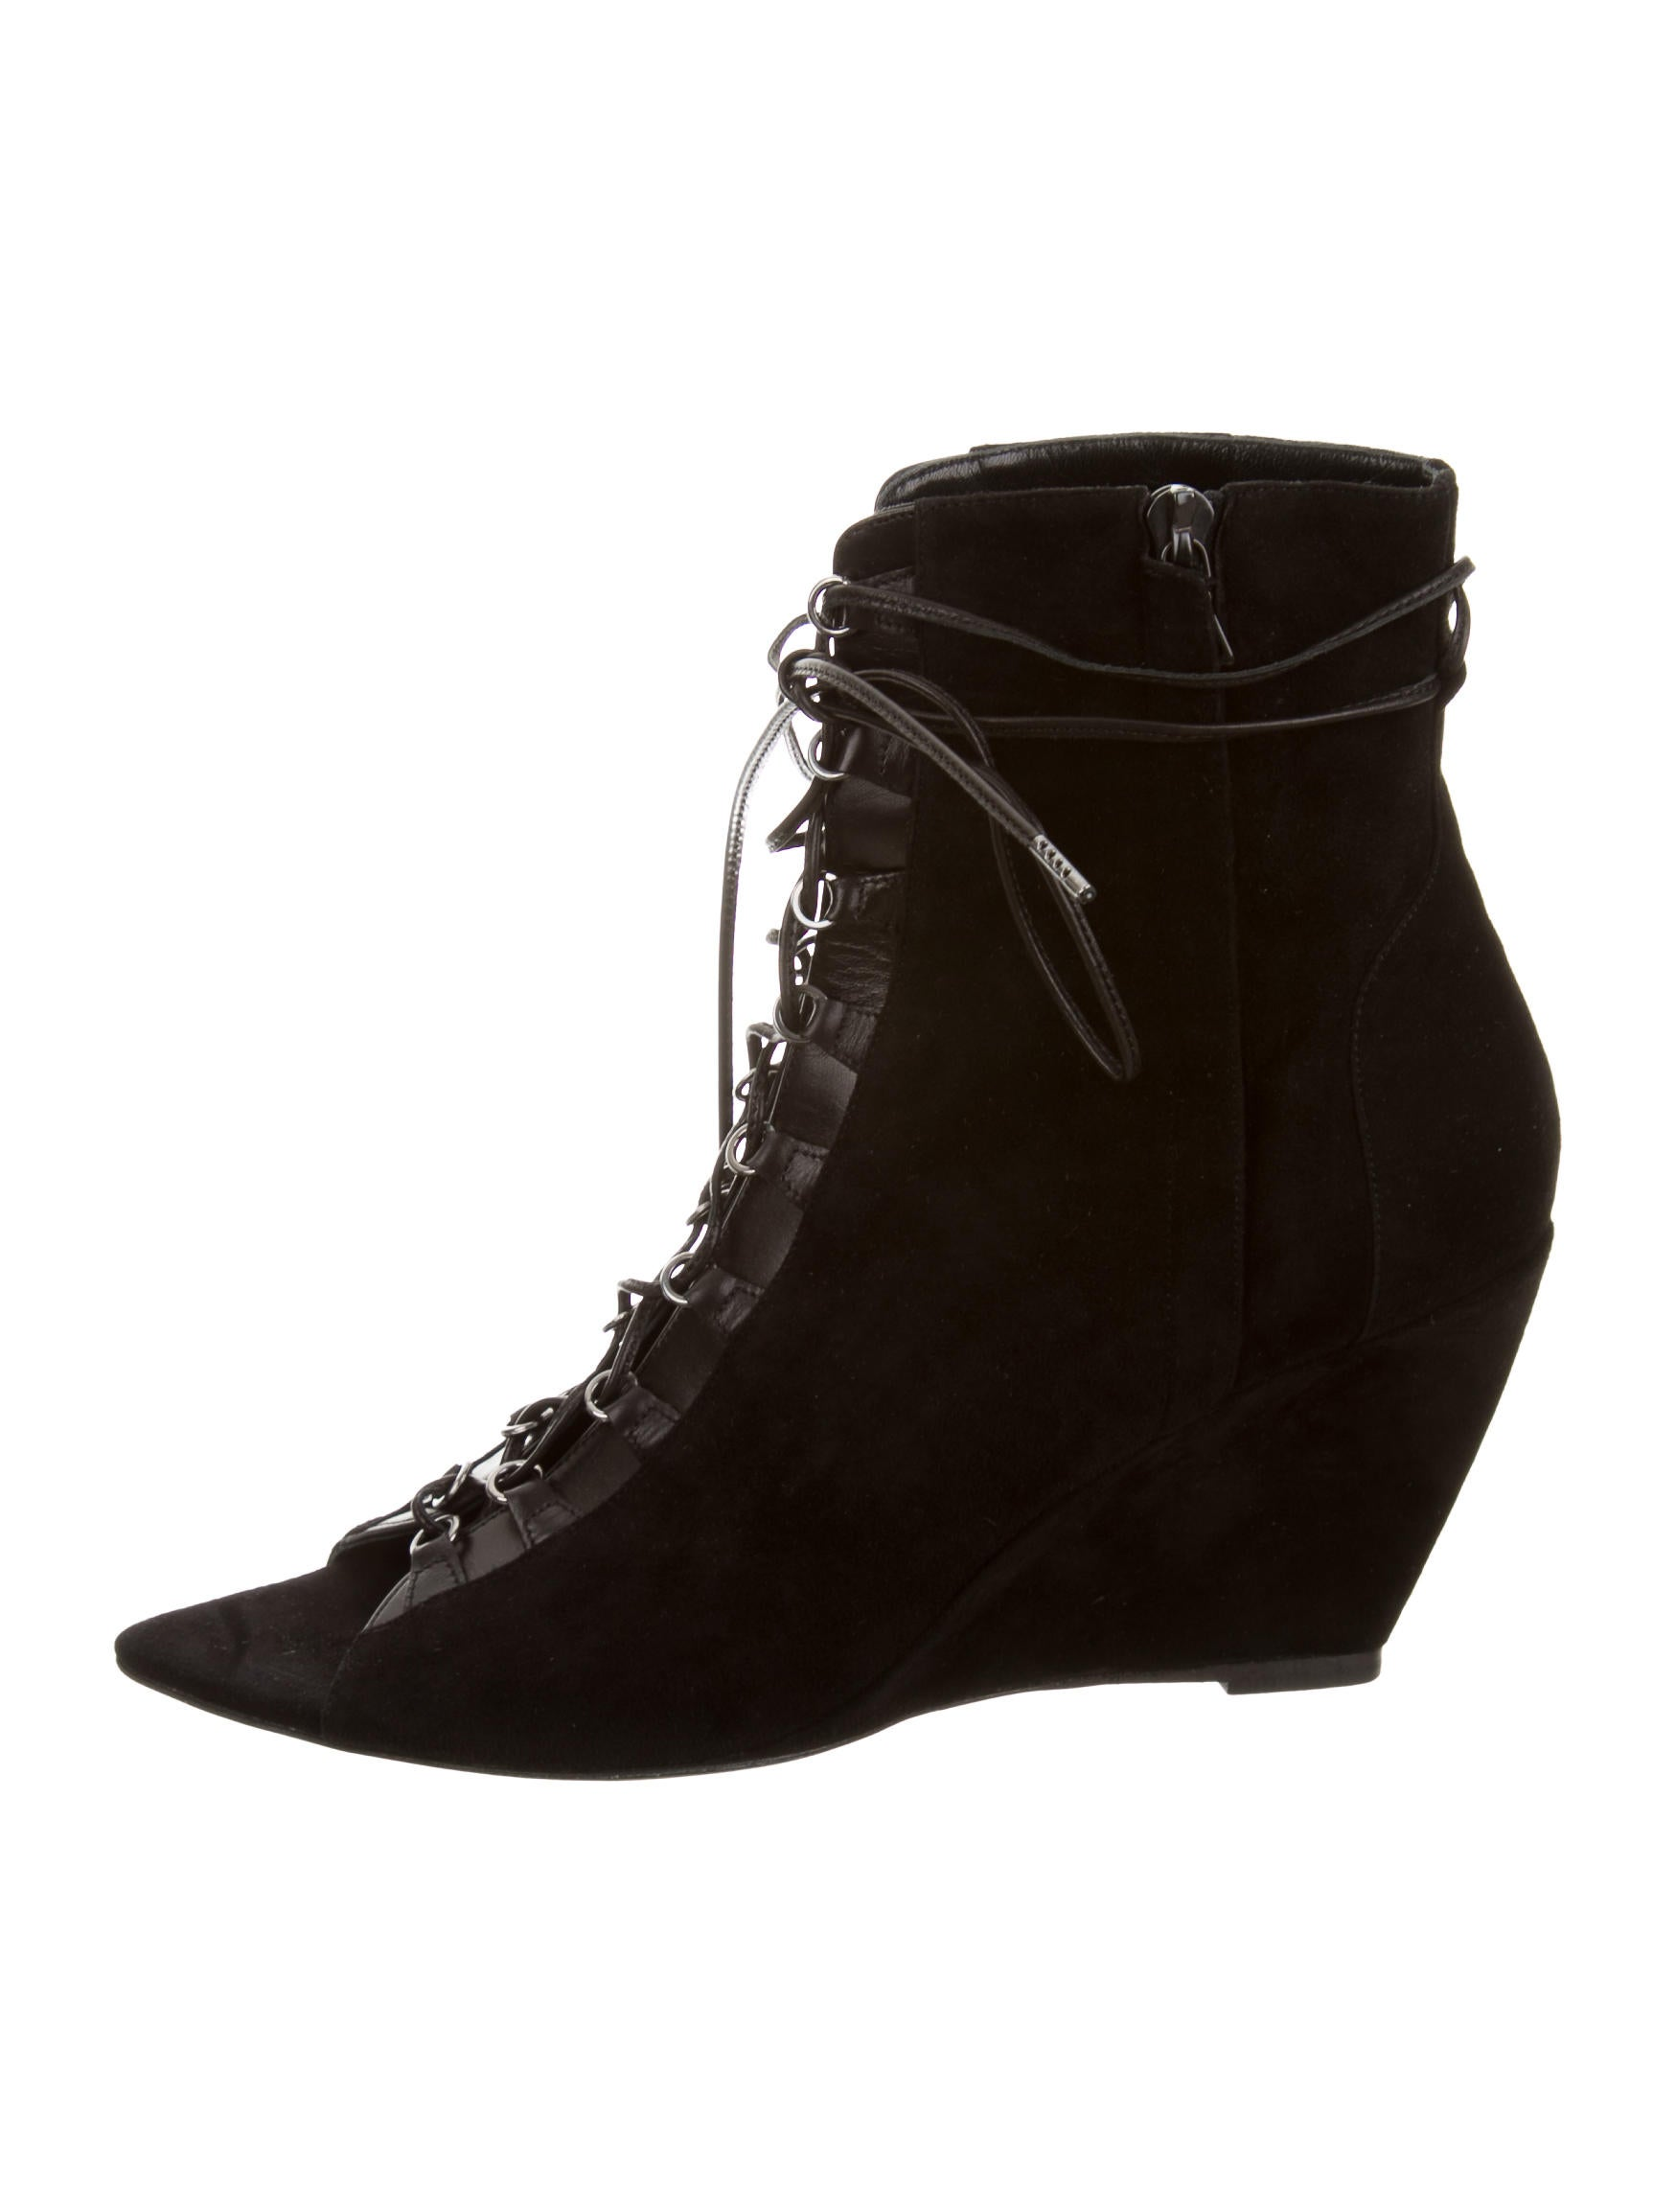 narciso rodriguez suede lace up wedge ankle boots w tags